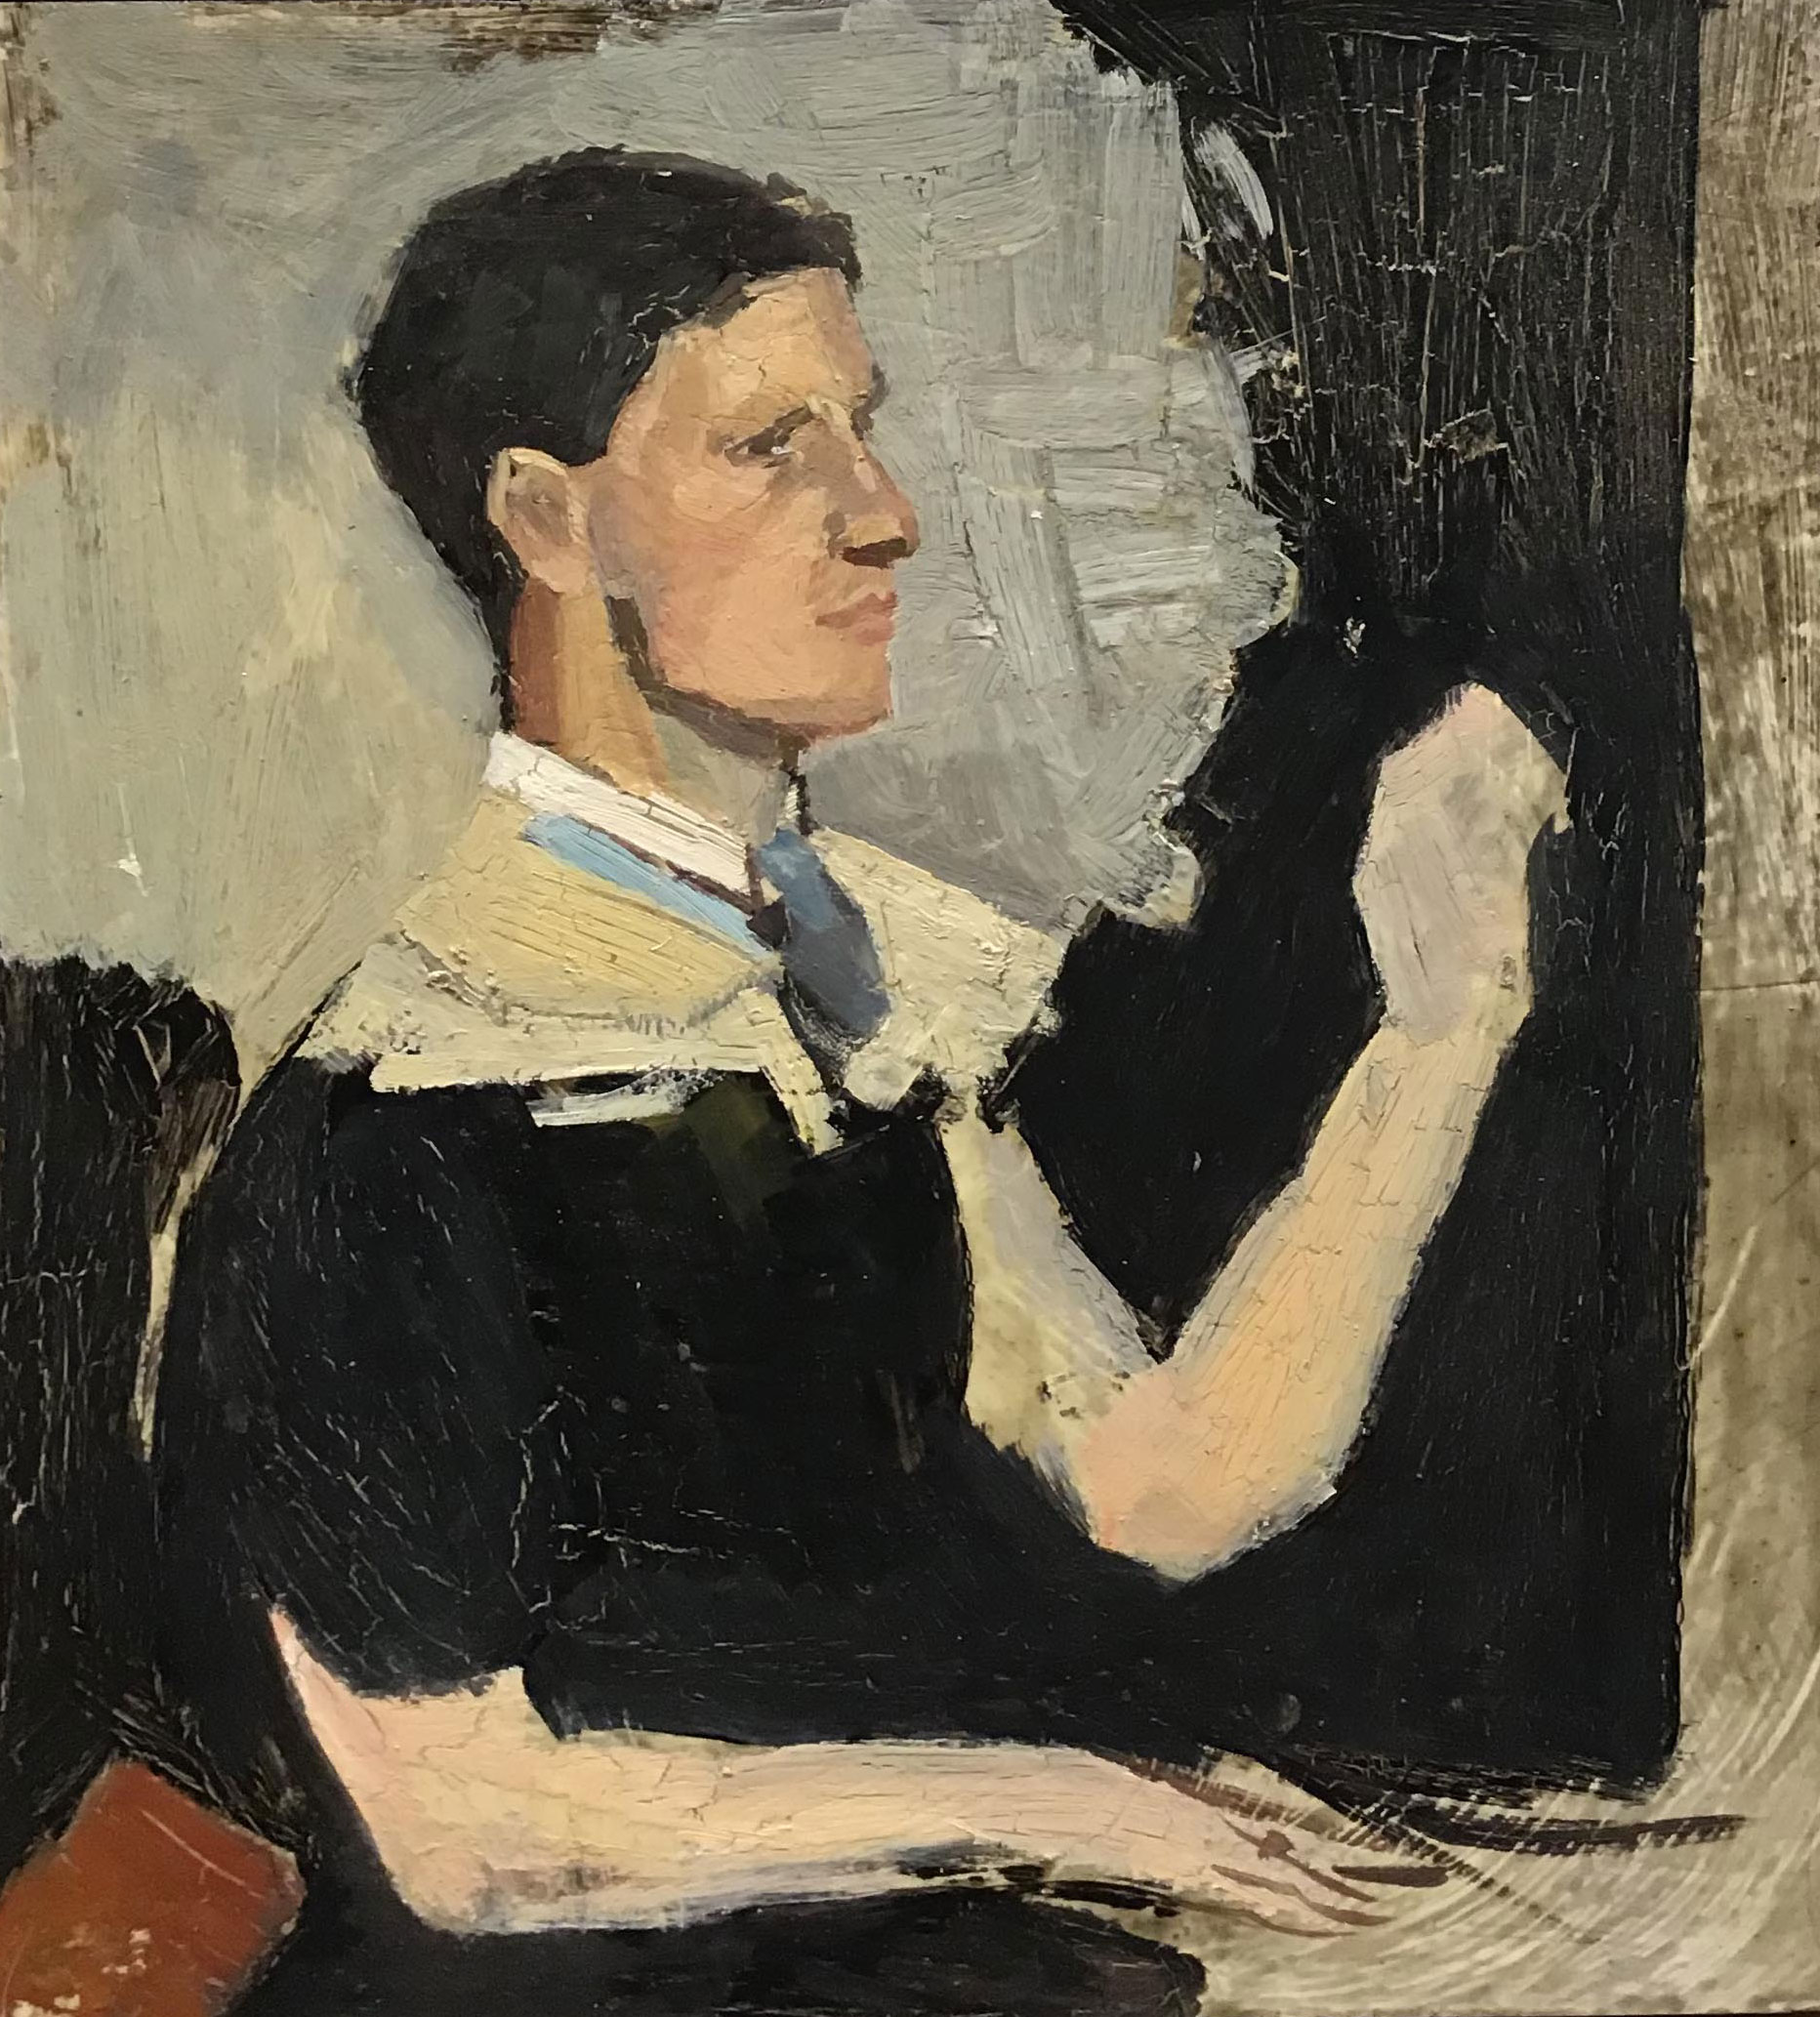 Hadyn Wilson painting in response to Portrait of a man by George Washington Lambert, 1894-1930